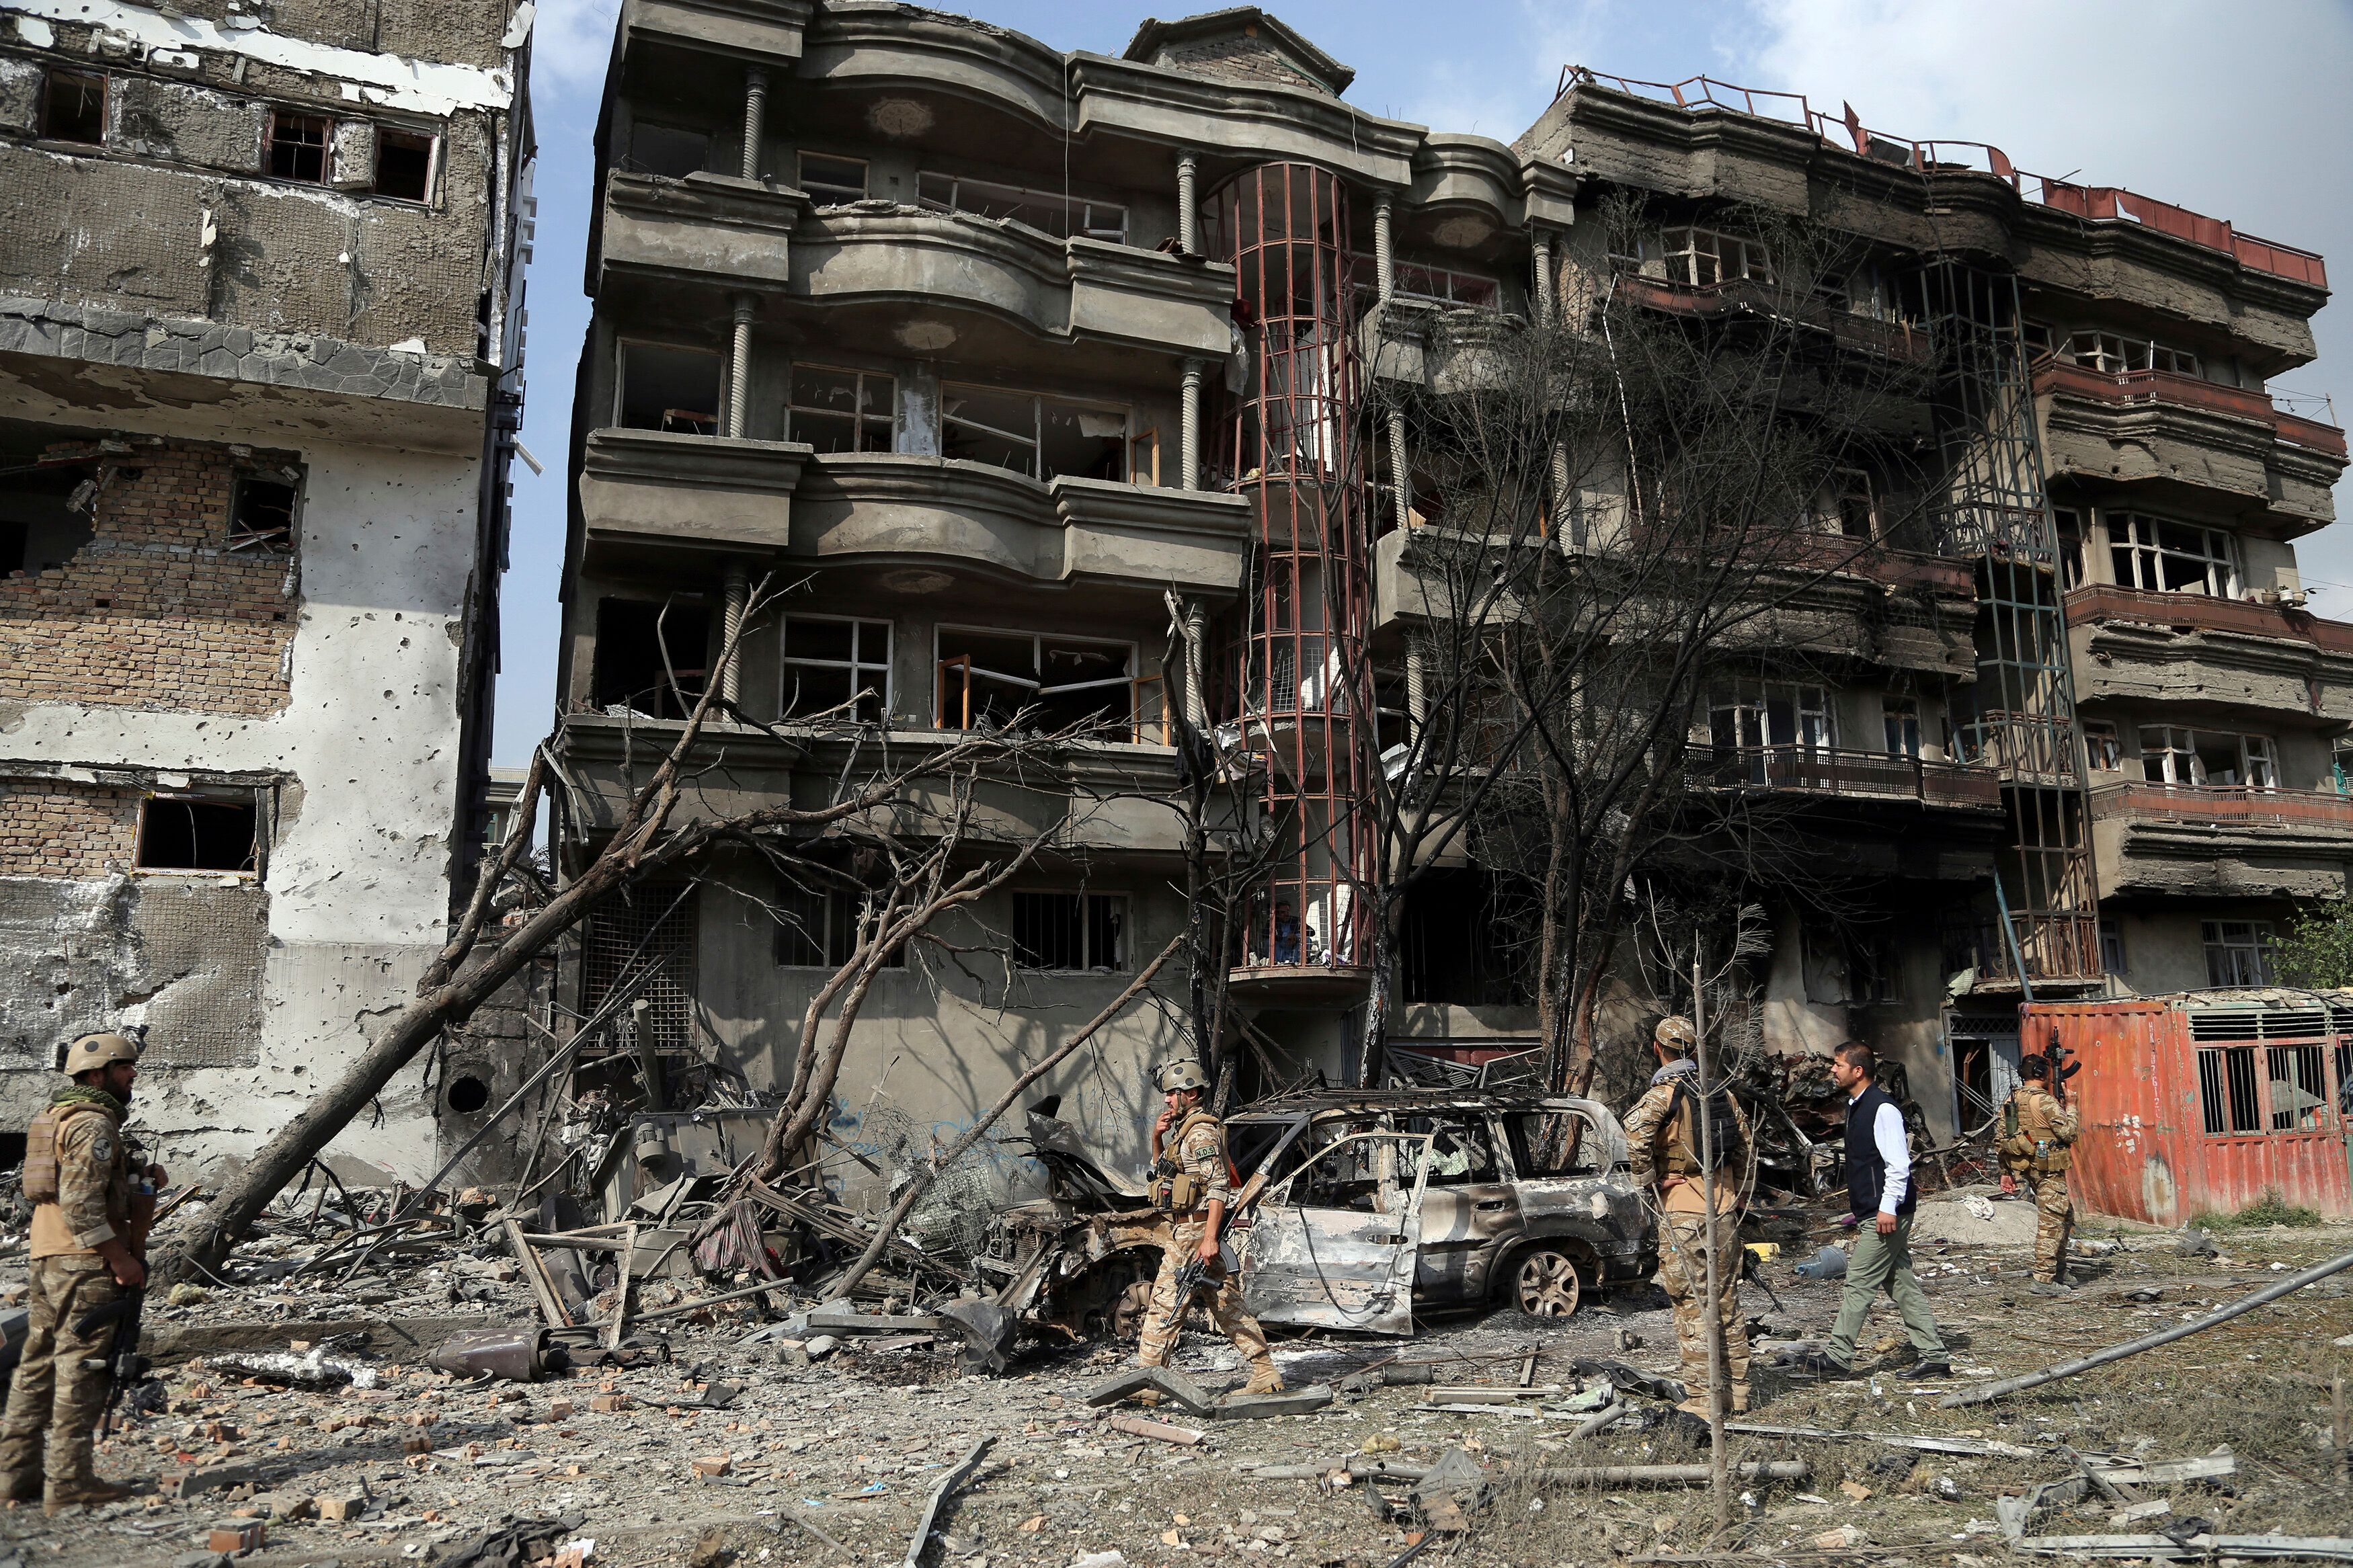 Afghan security forces inspect the aftermath of Sunday's attack against the office of the president's running mate in Kabul.